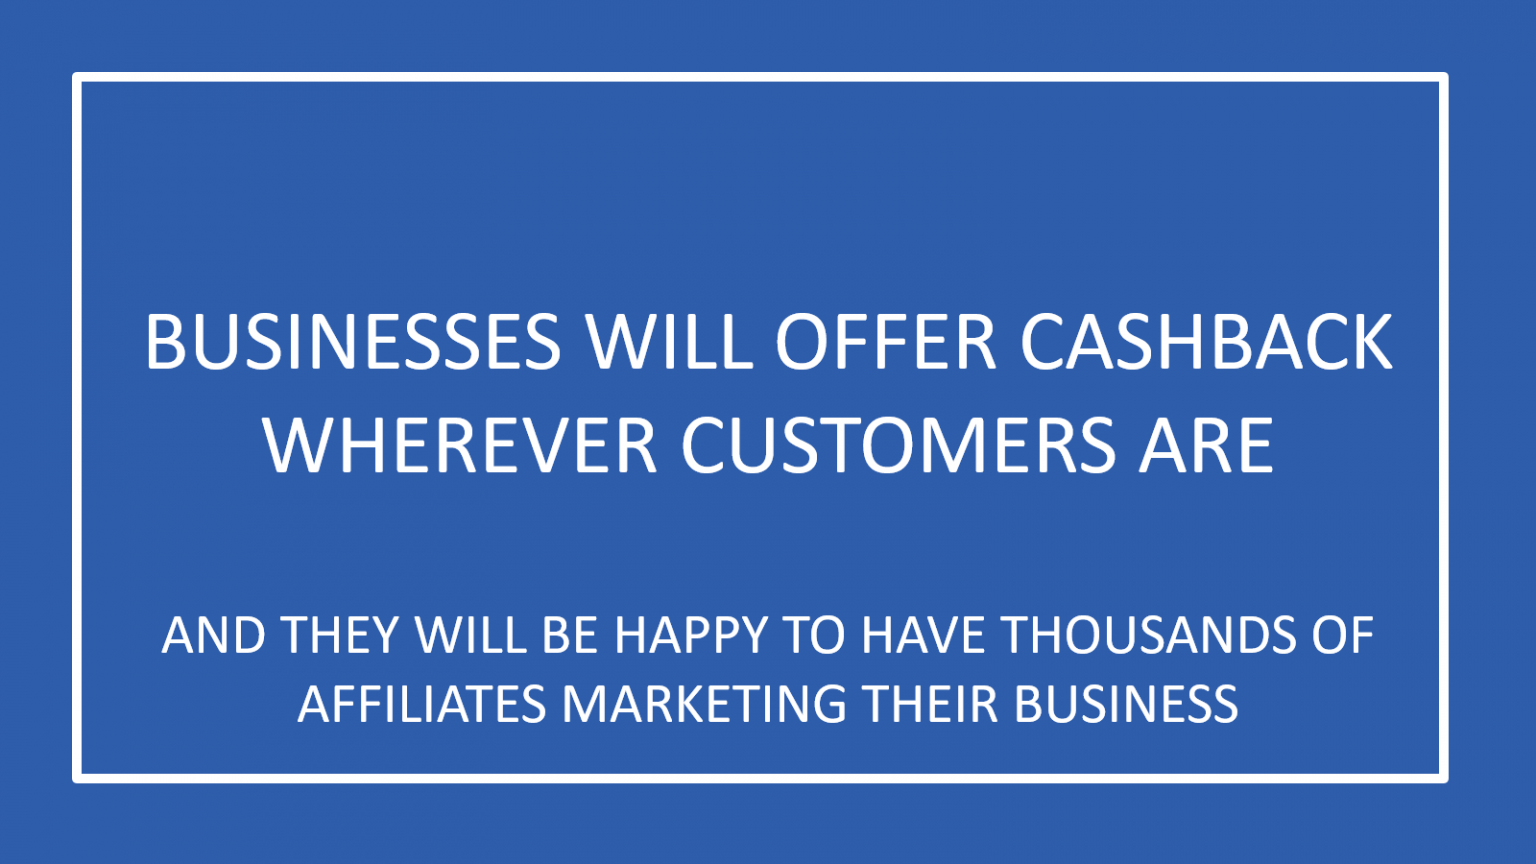 2222 - Businesses Offer Cashback - Ten10